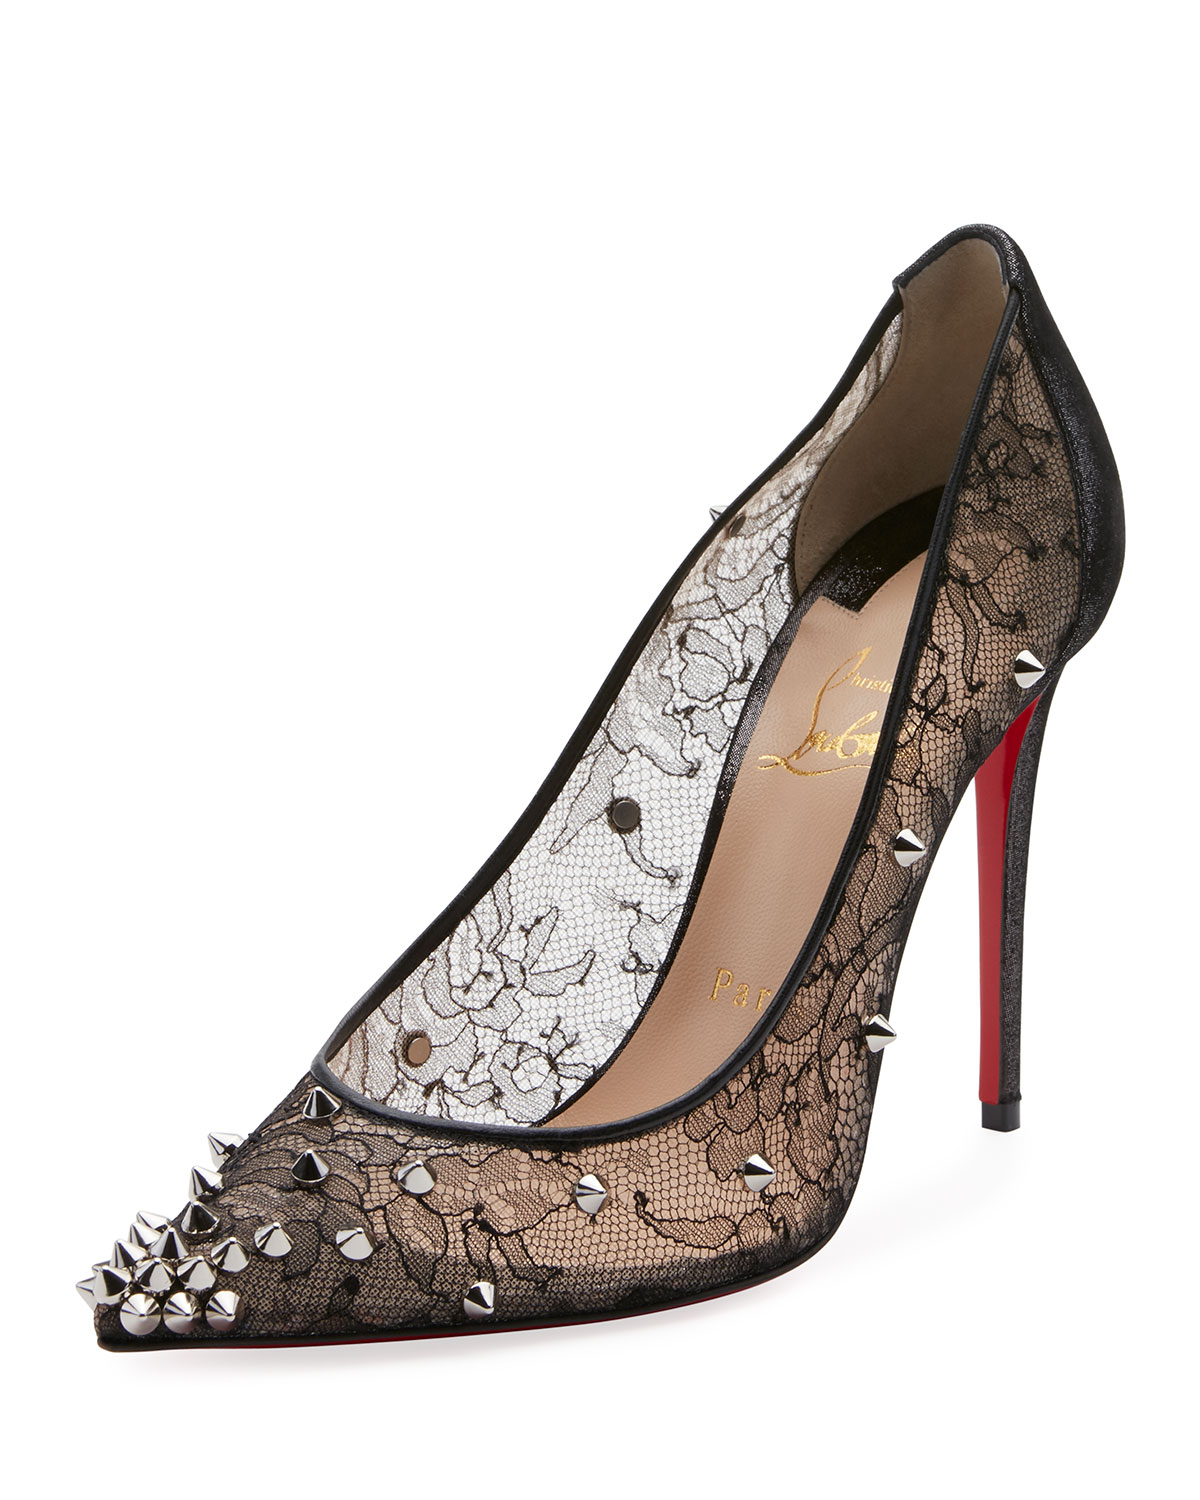 6f6a75bc114 Christian Louboutin Decollete 554 Spiked Lace Red Sole Pumps ...